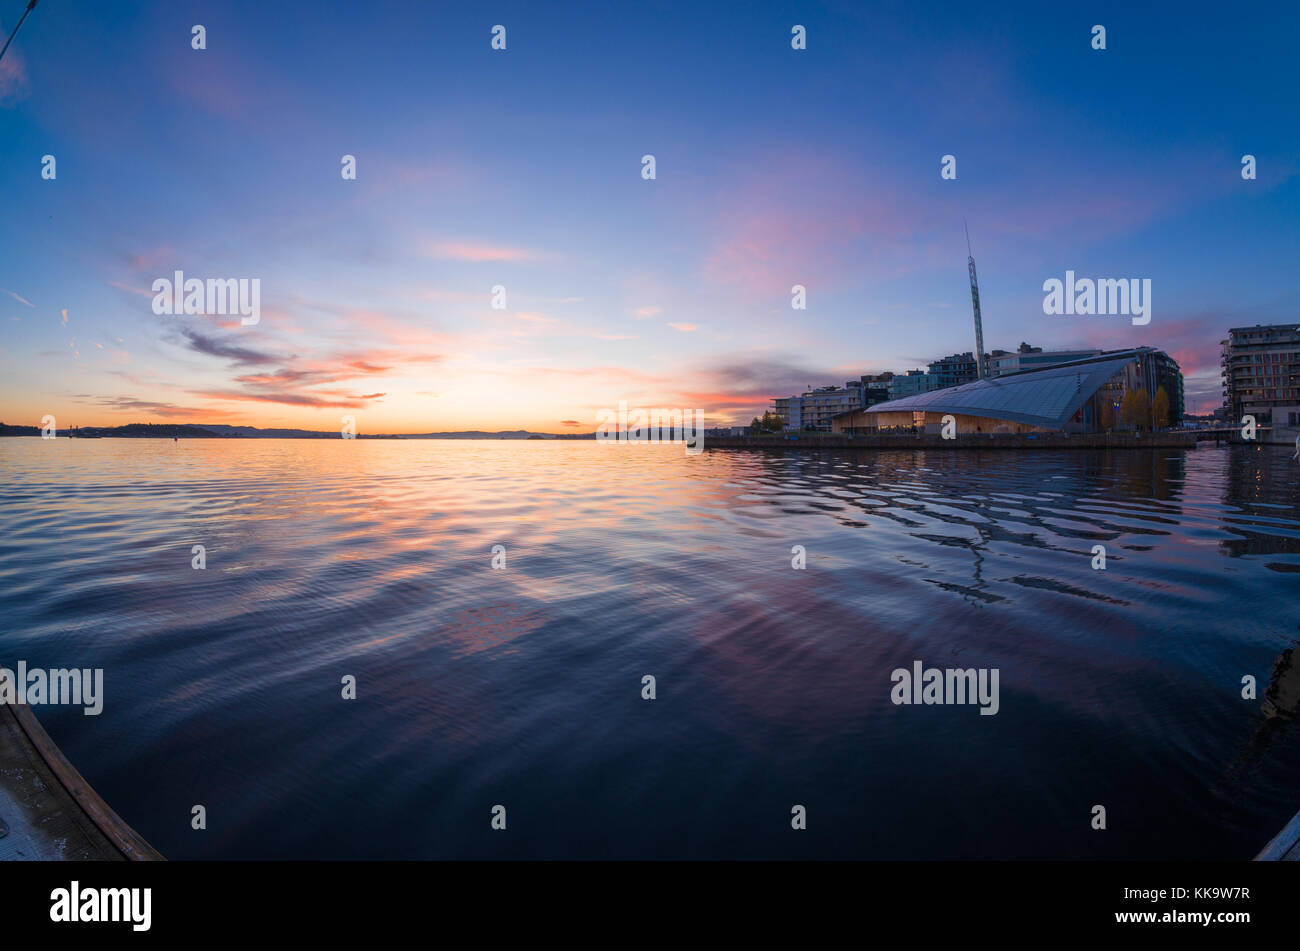 Waterfront of Tjuvholmen, Oslo, Norway, with Astrup Fearnley Museum, under colorful sunset, viewed from floating - Stock Image